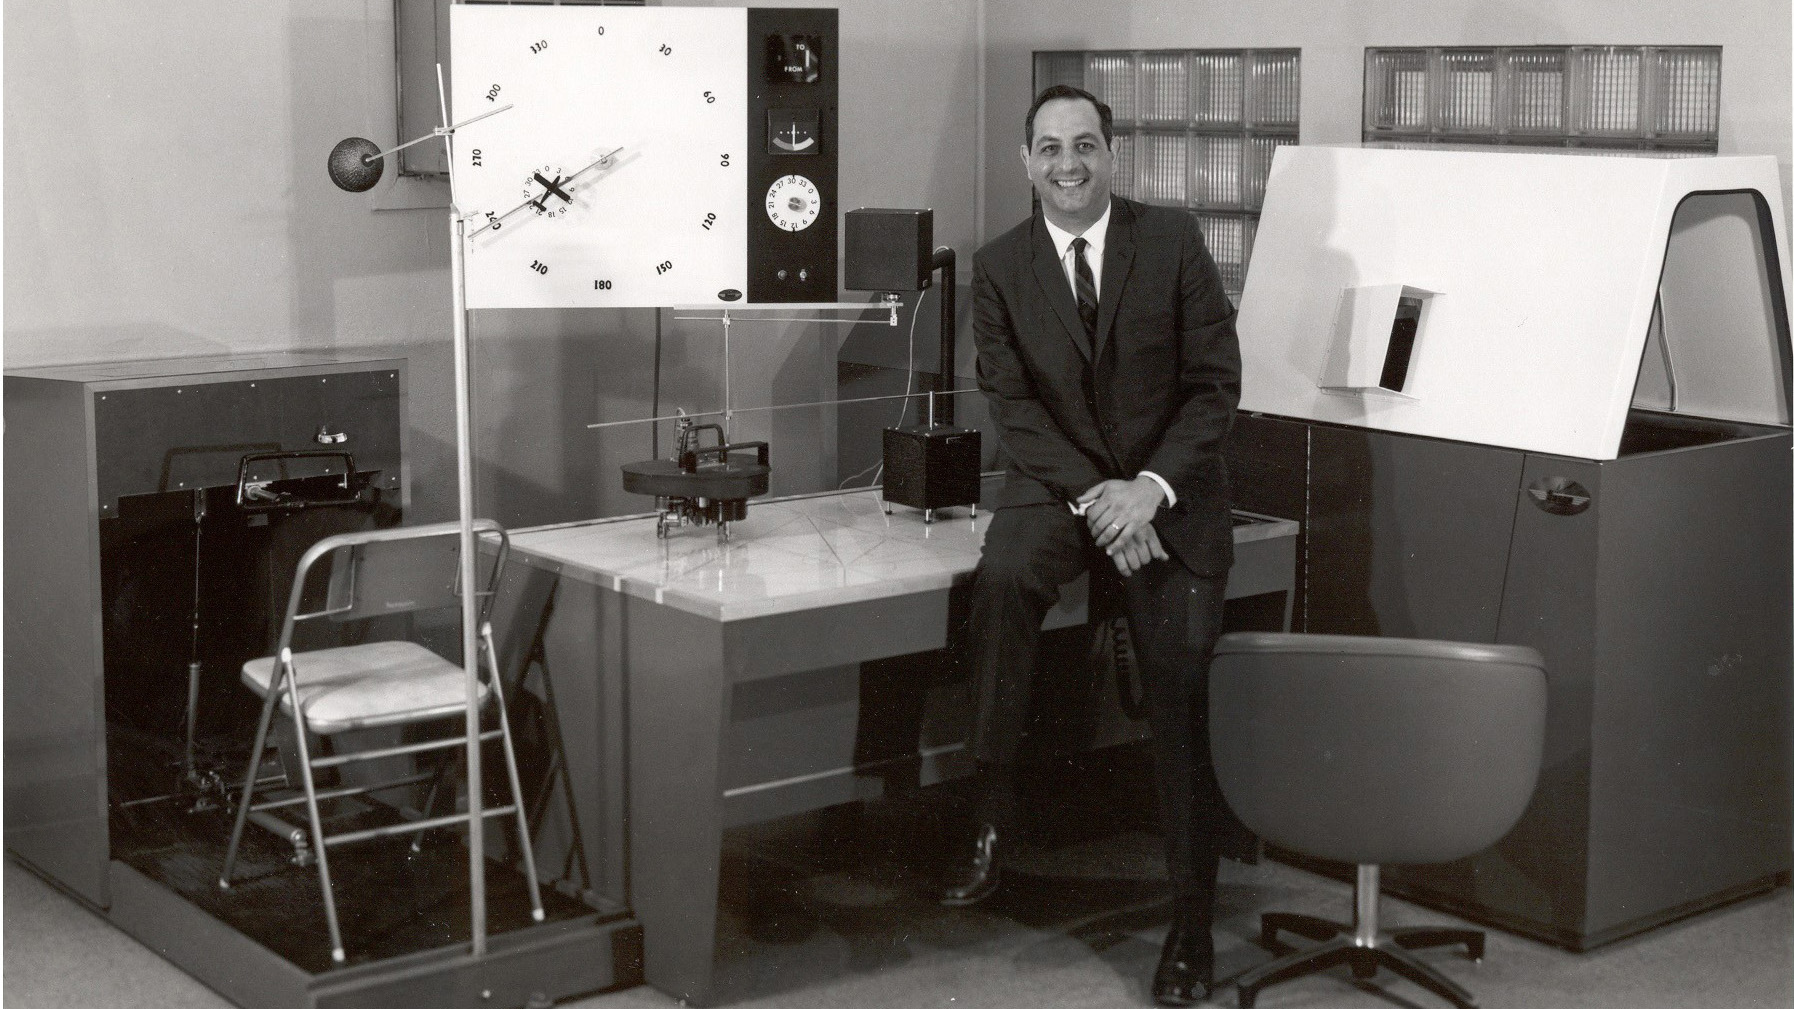 Rudy Frasca designed the Model 100 flight simulator and personally installed the unit at flight schools and colleges. Photo courtesy of Frasca International.